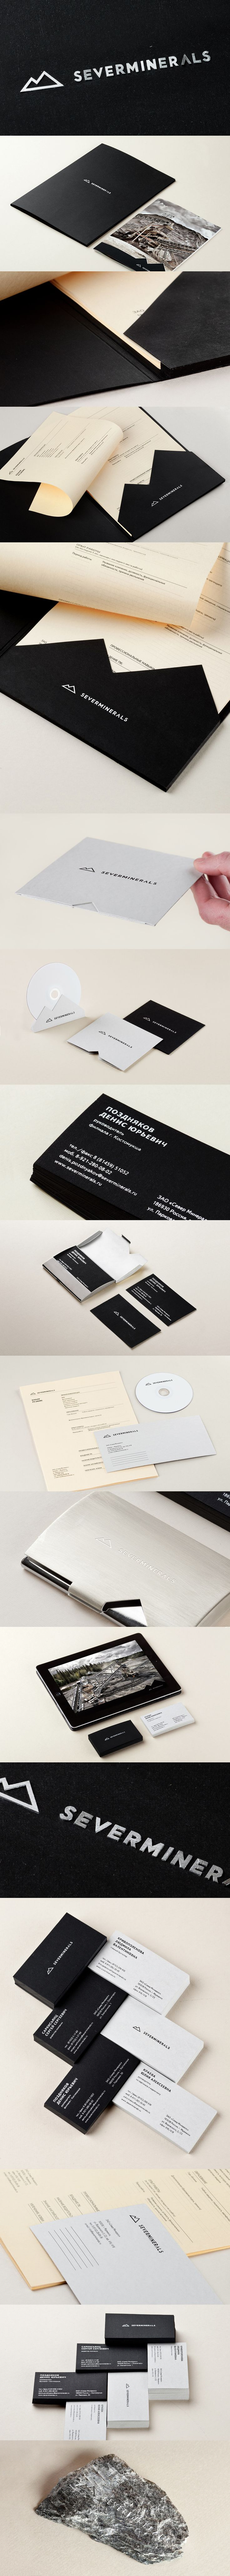 Severminerals, Identity Branding Suite. Black. Silver. Business Card. Letterhead.